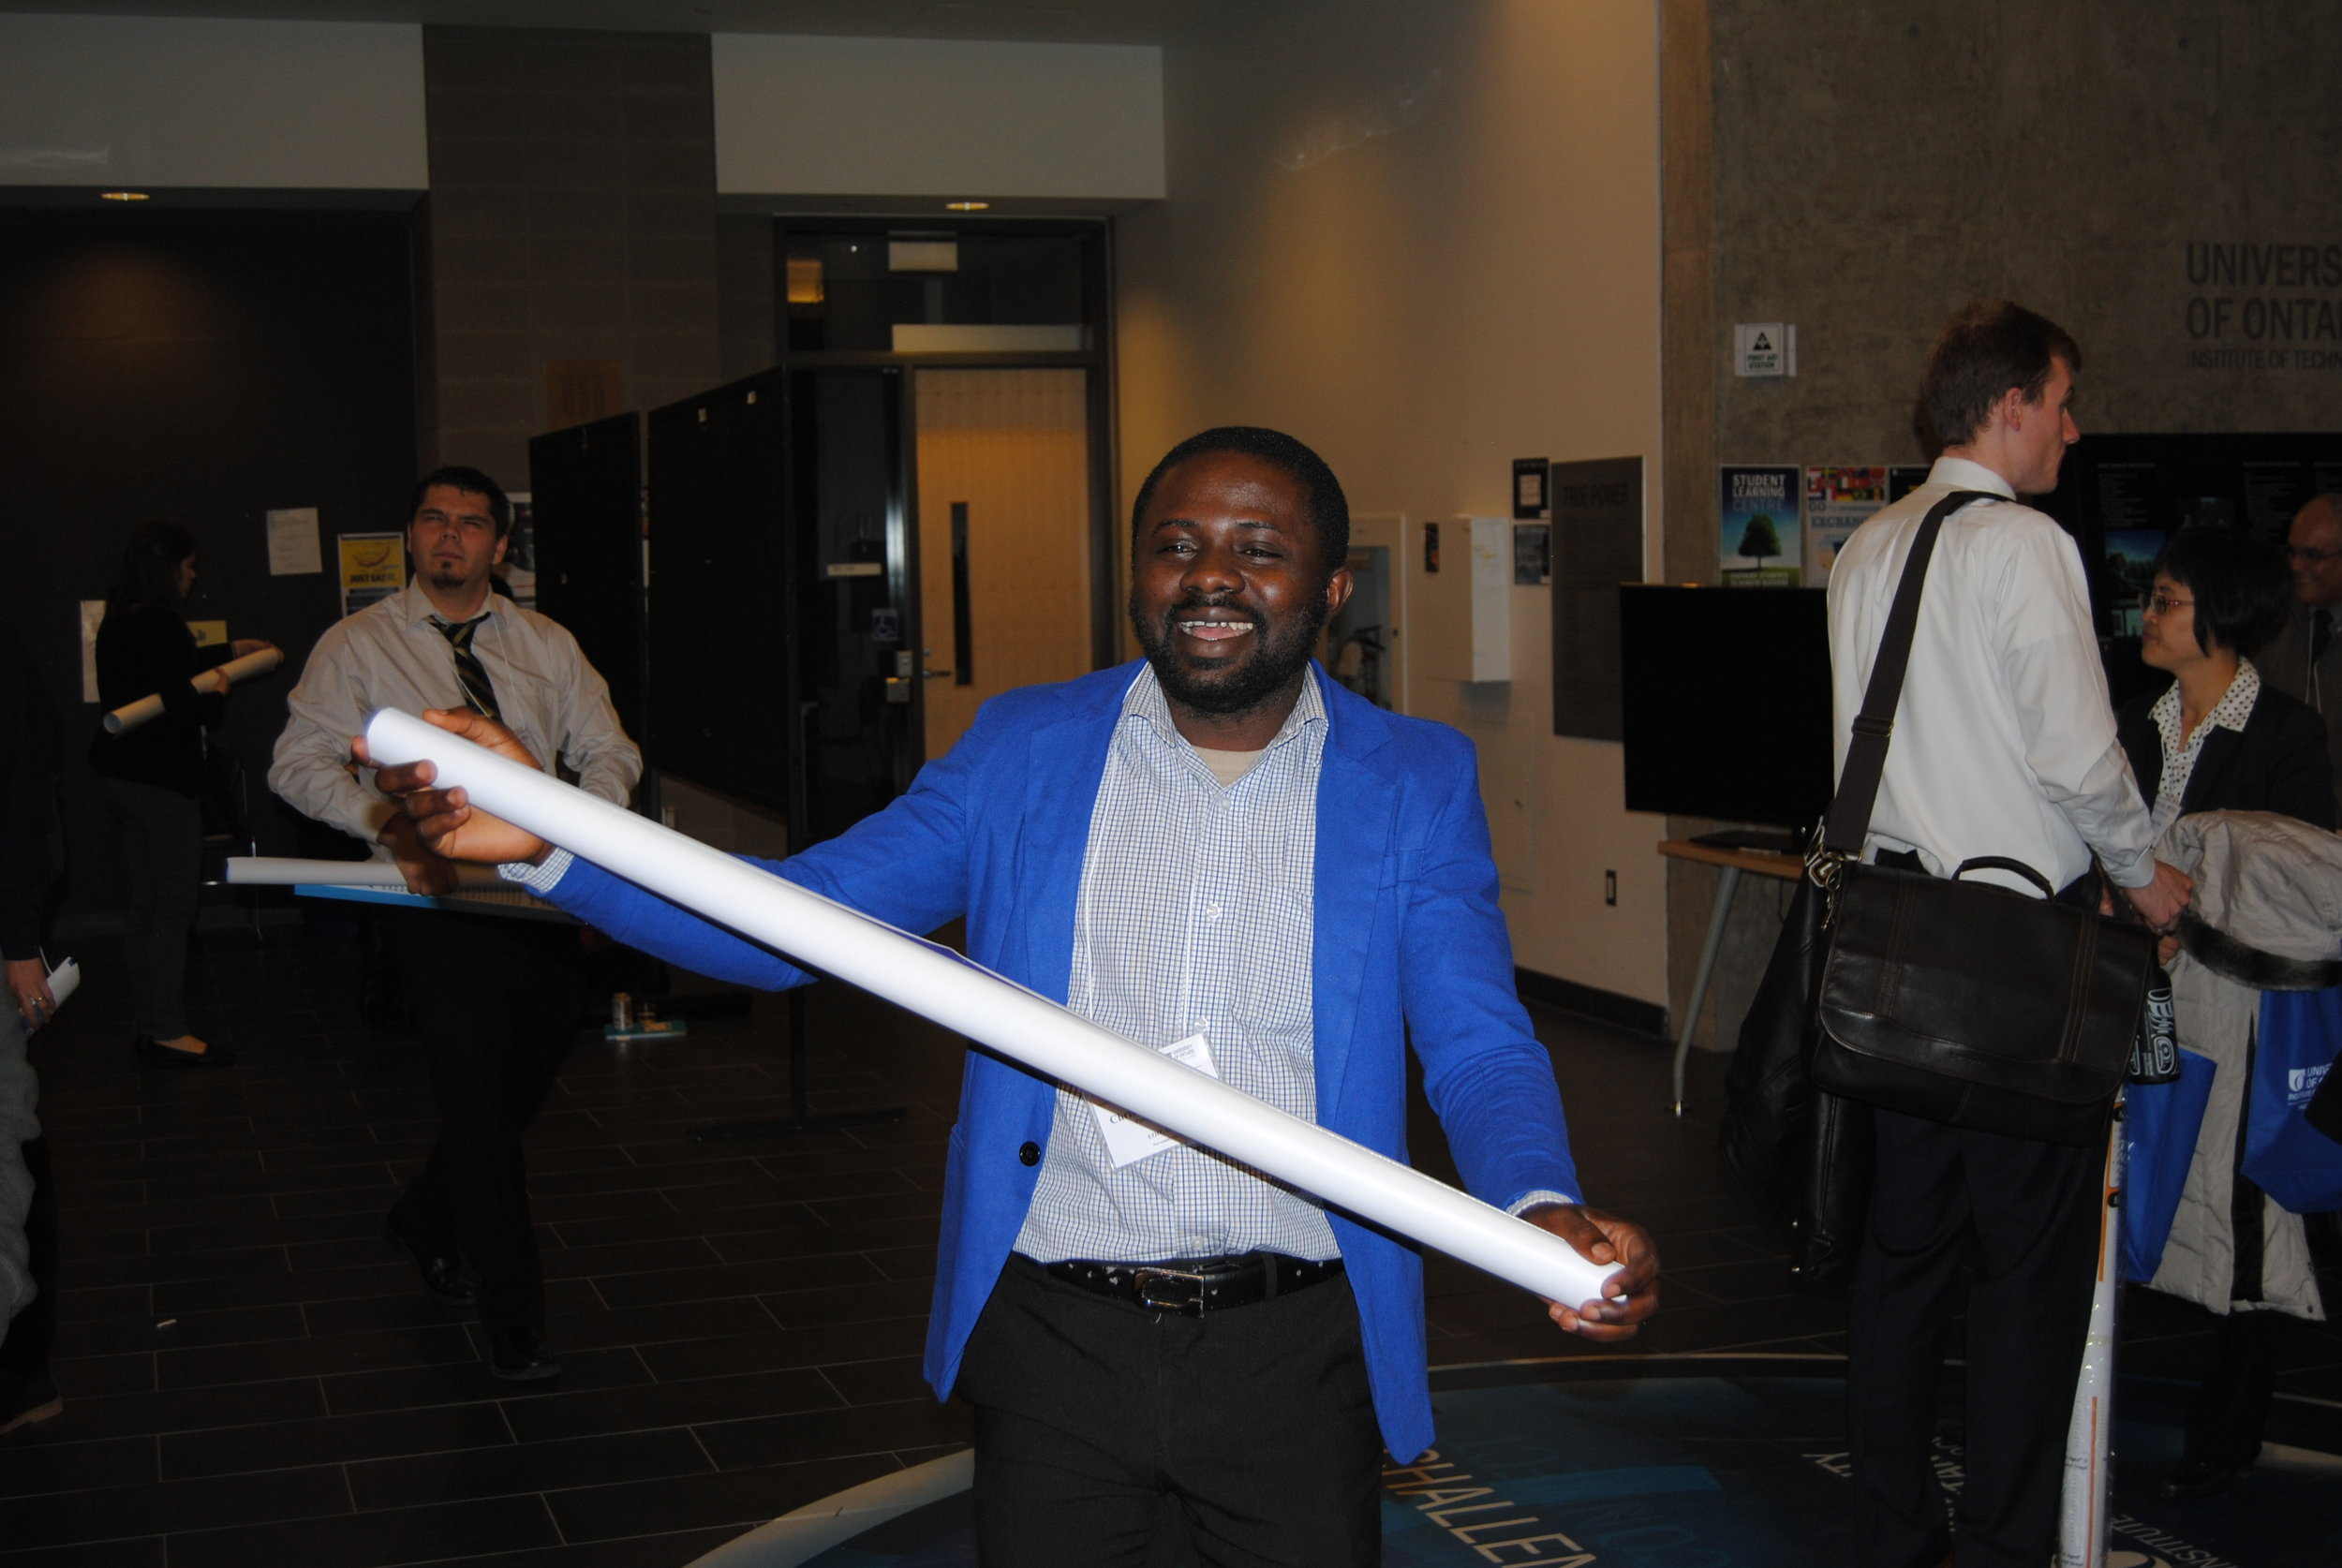 Christopher after presenting his work at the ECS (Canadian Section) Fall 2016 -UOIT